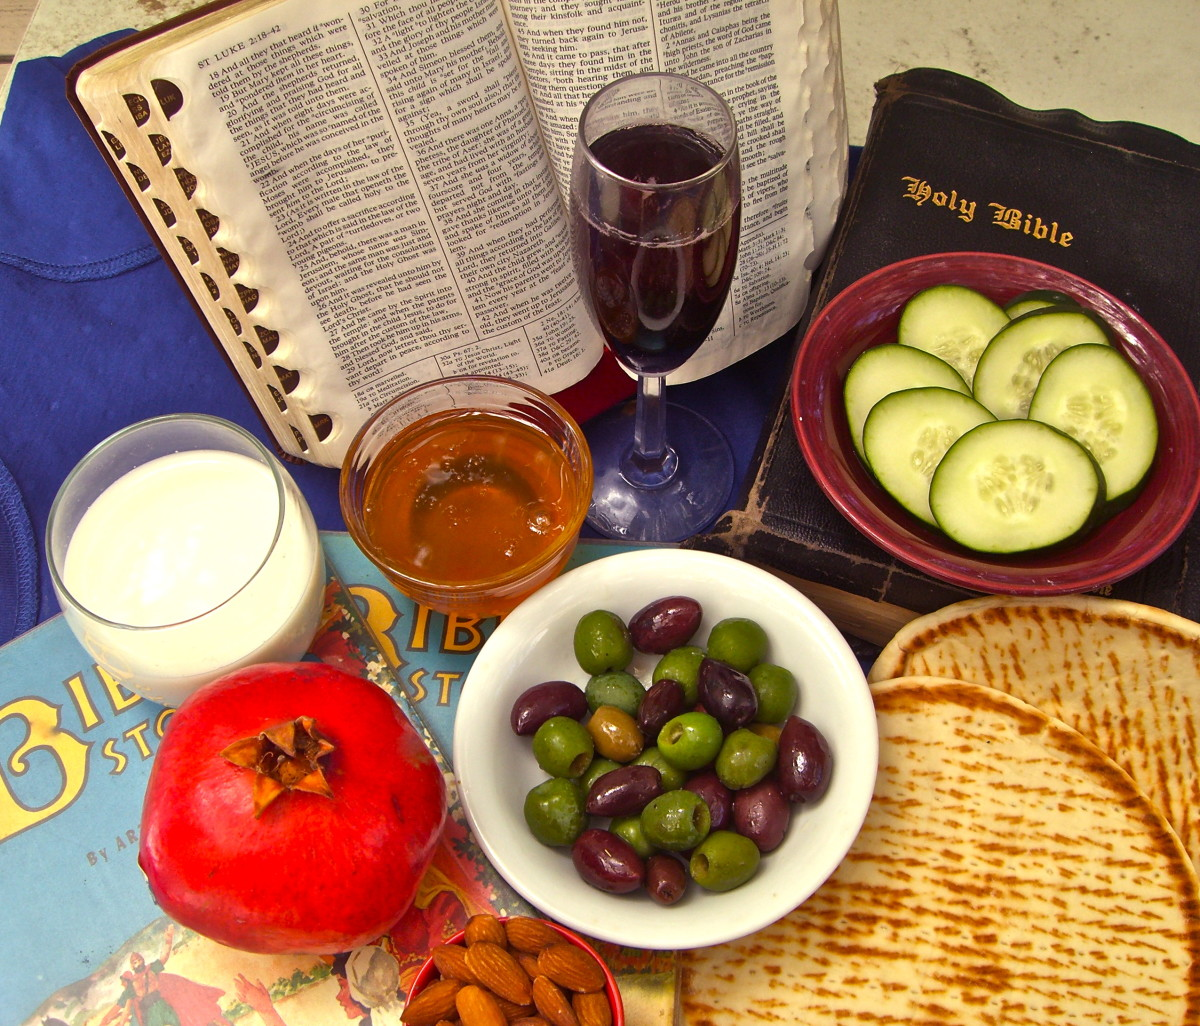 eating-customs-in-the-bible